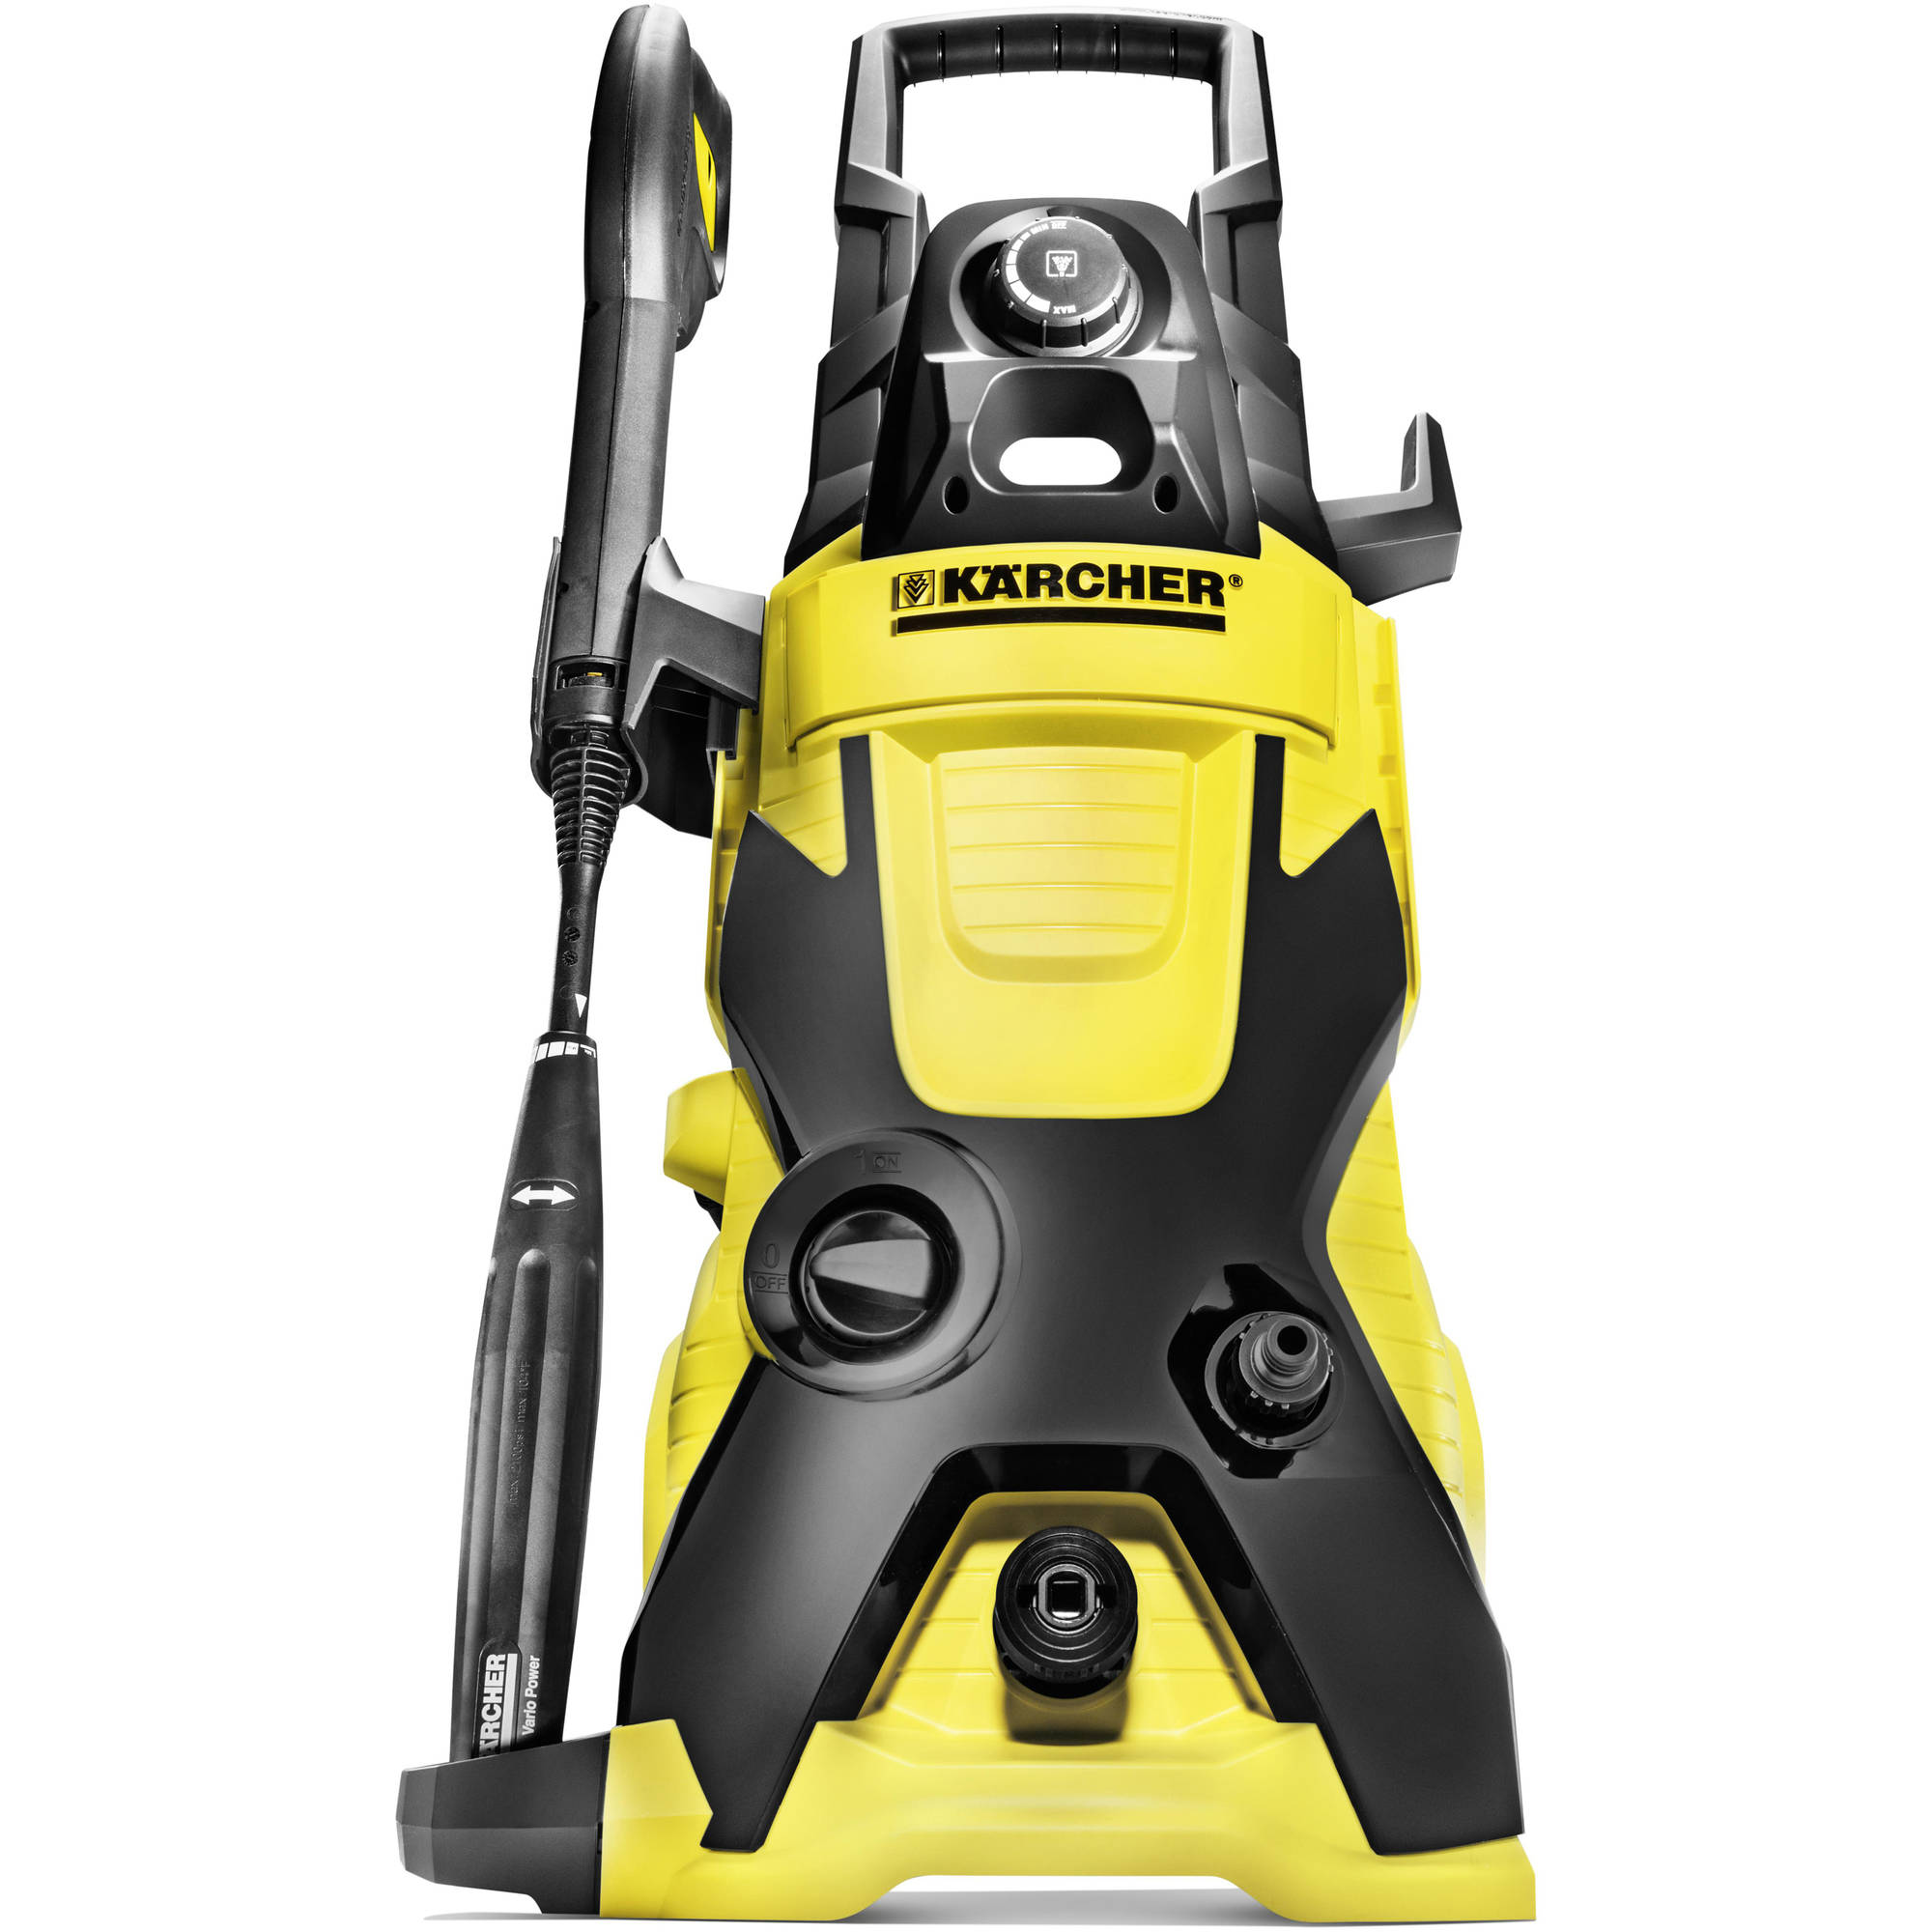 Karcher K4 1900 PSI Electric Pressure Washer